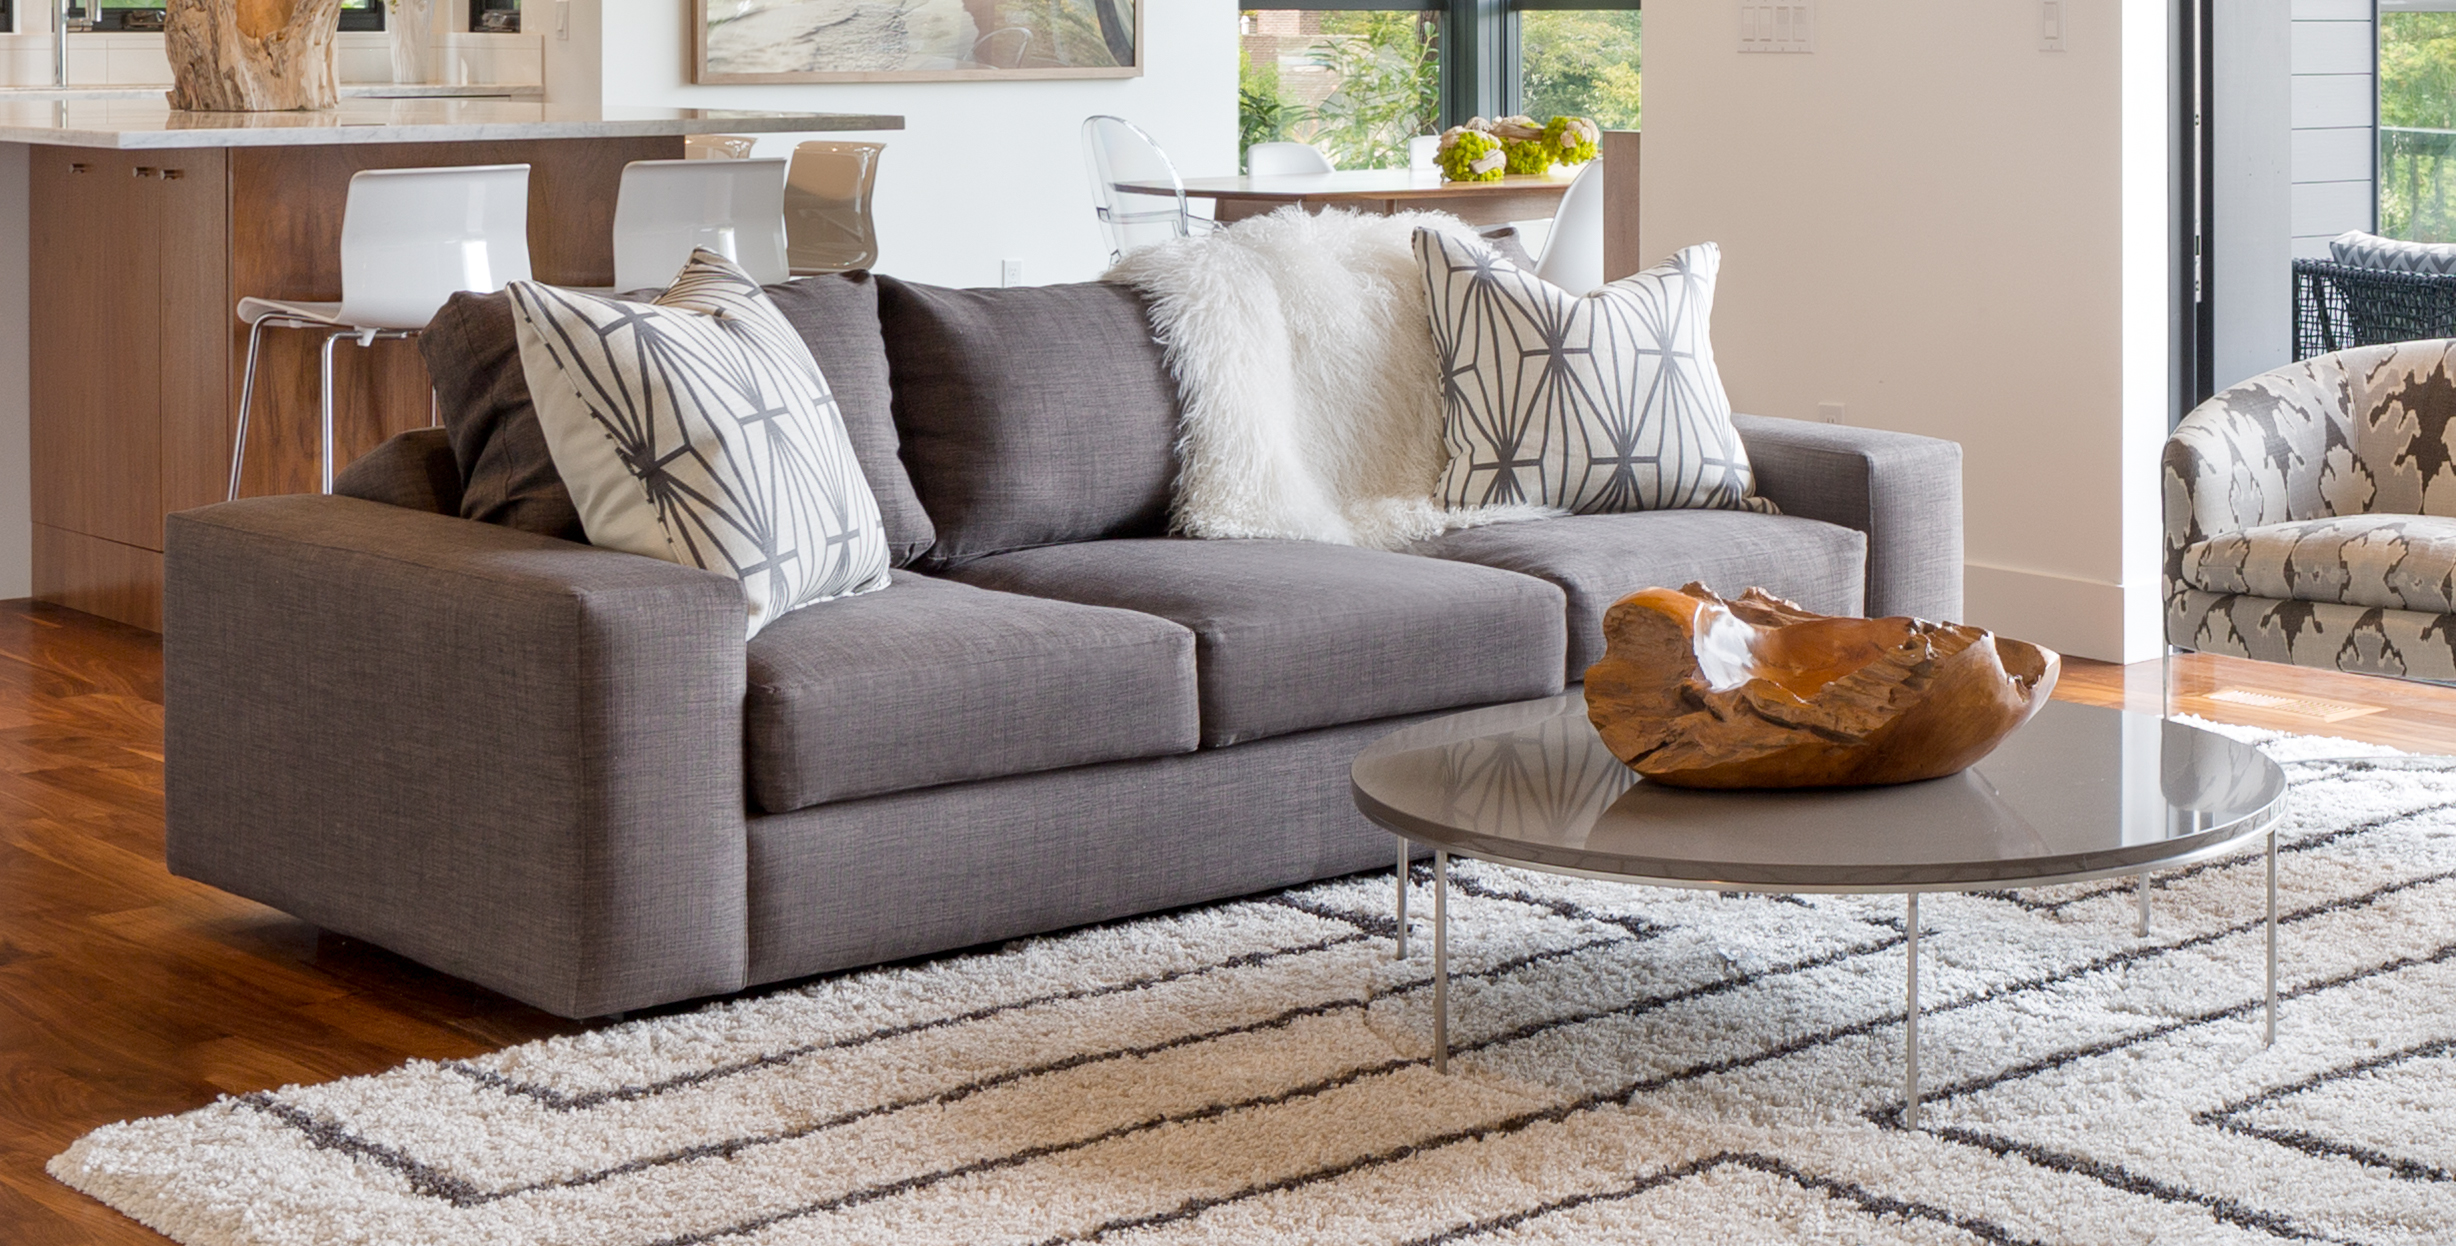 Full Size of Sofa Alternatives Togo Ikea Couch For Small Spaces Best Bed Living Room Cheap Reddit Uk To Sleeper Sofas Crossword Jackson Home The Honoroak Zweisitzer Walter Sofa Sofa Alternatives